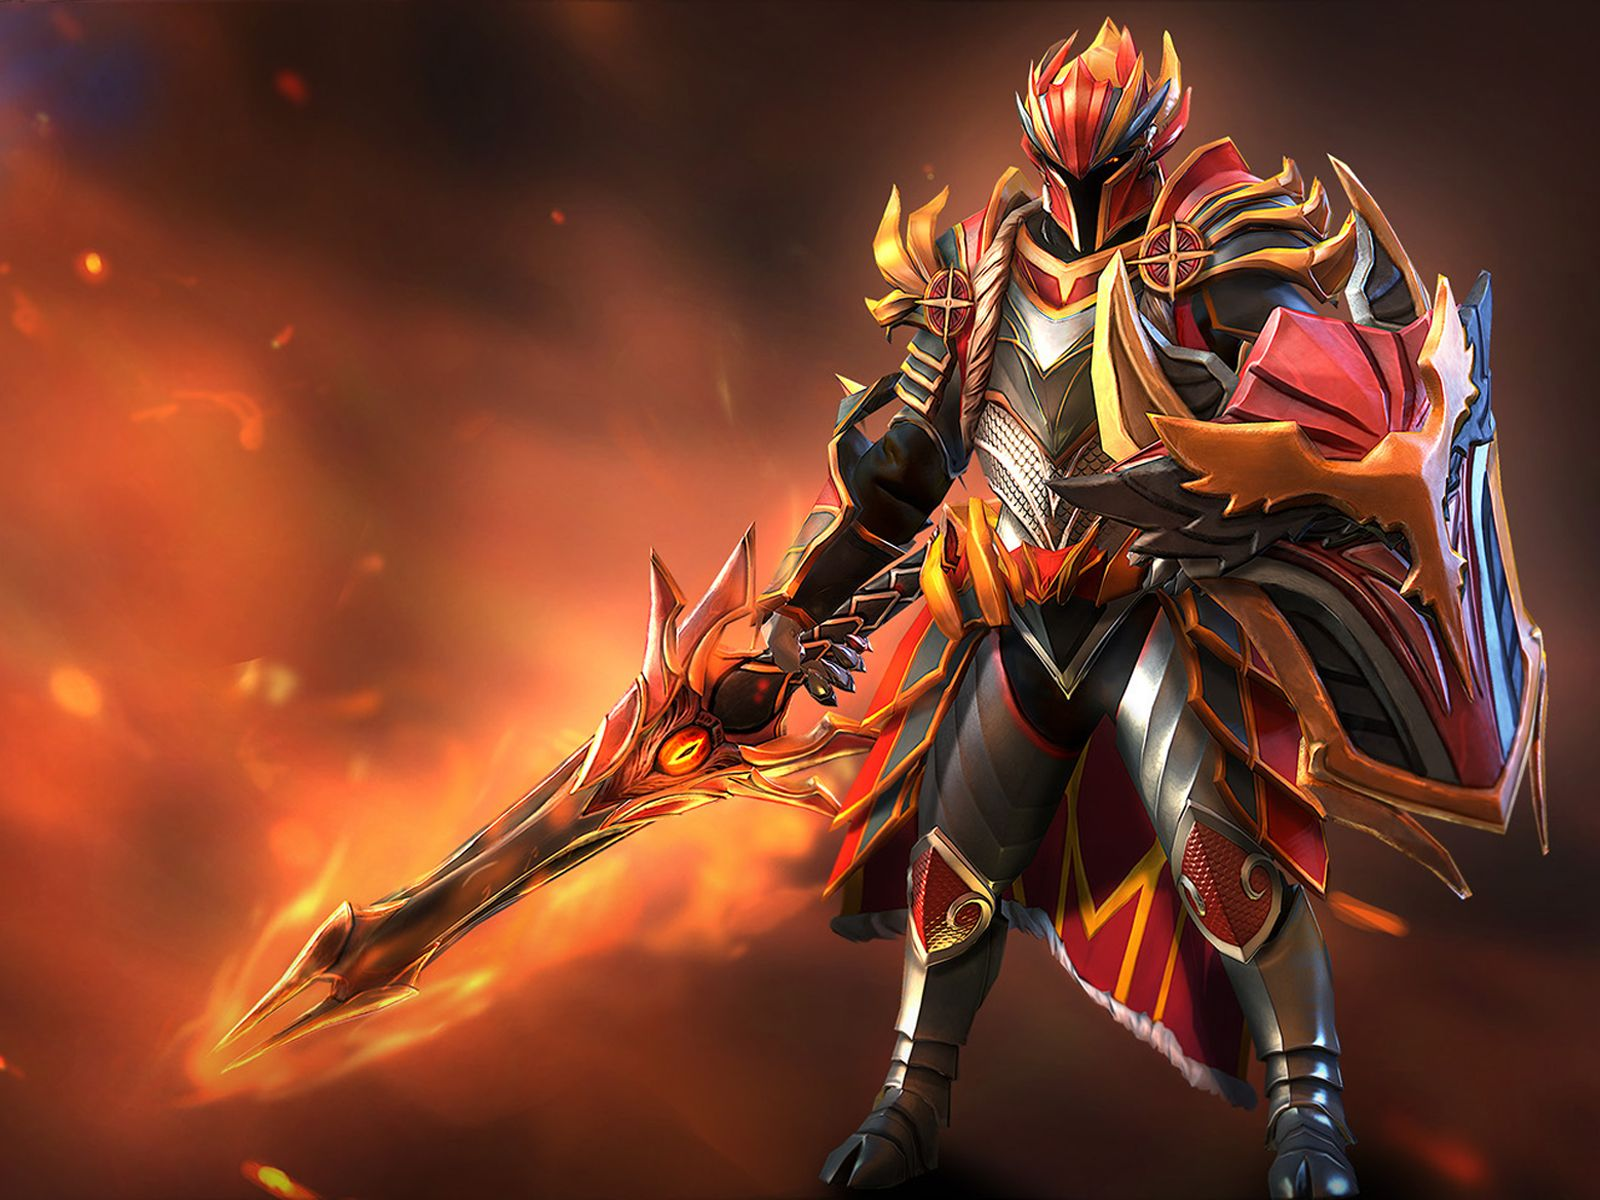 Pin By Neebsan On I Liked In 2019 Dota 2 Wallpaper Dragon Knight Dragon